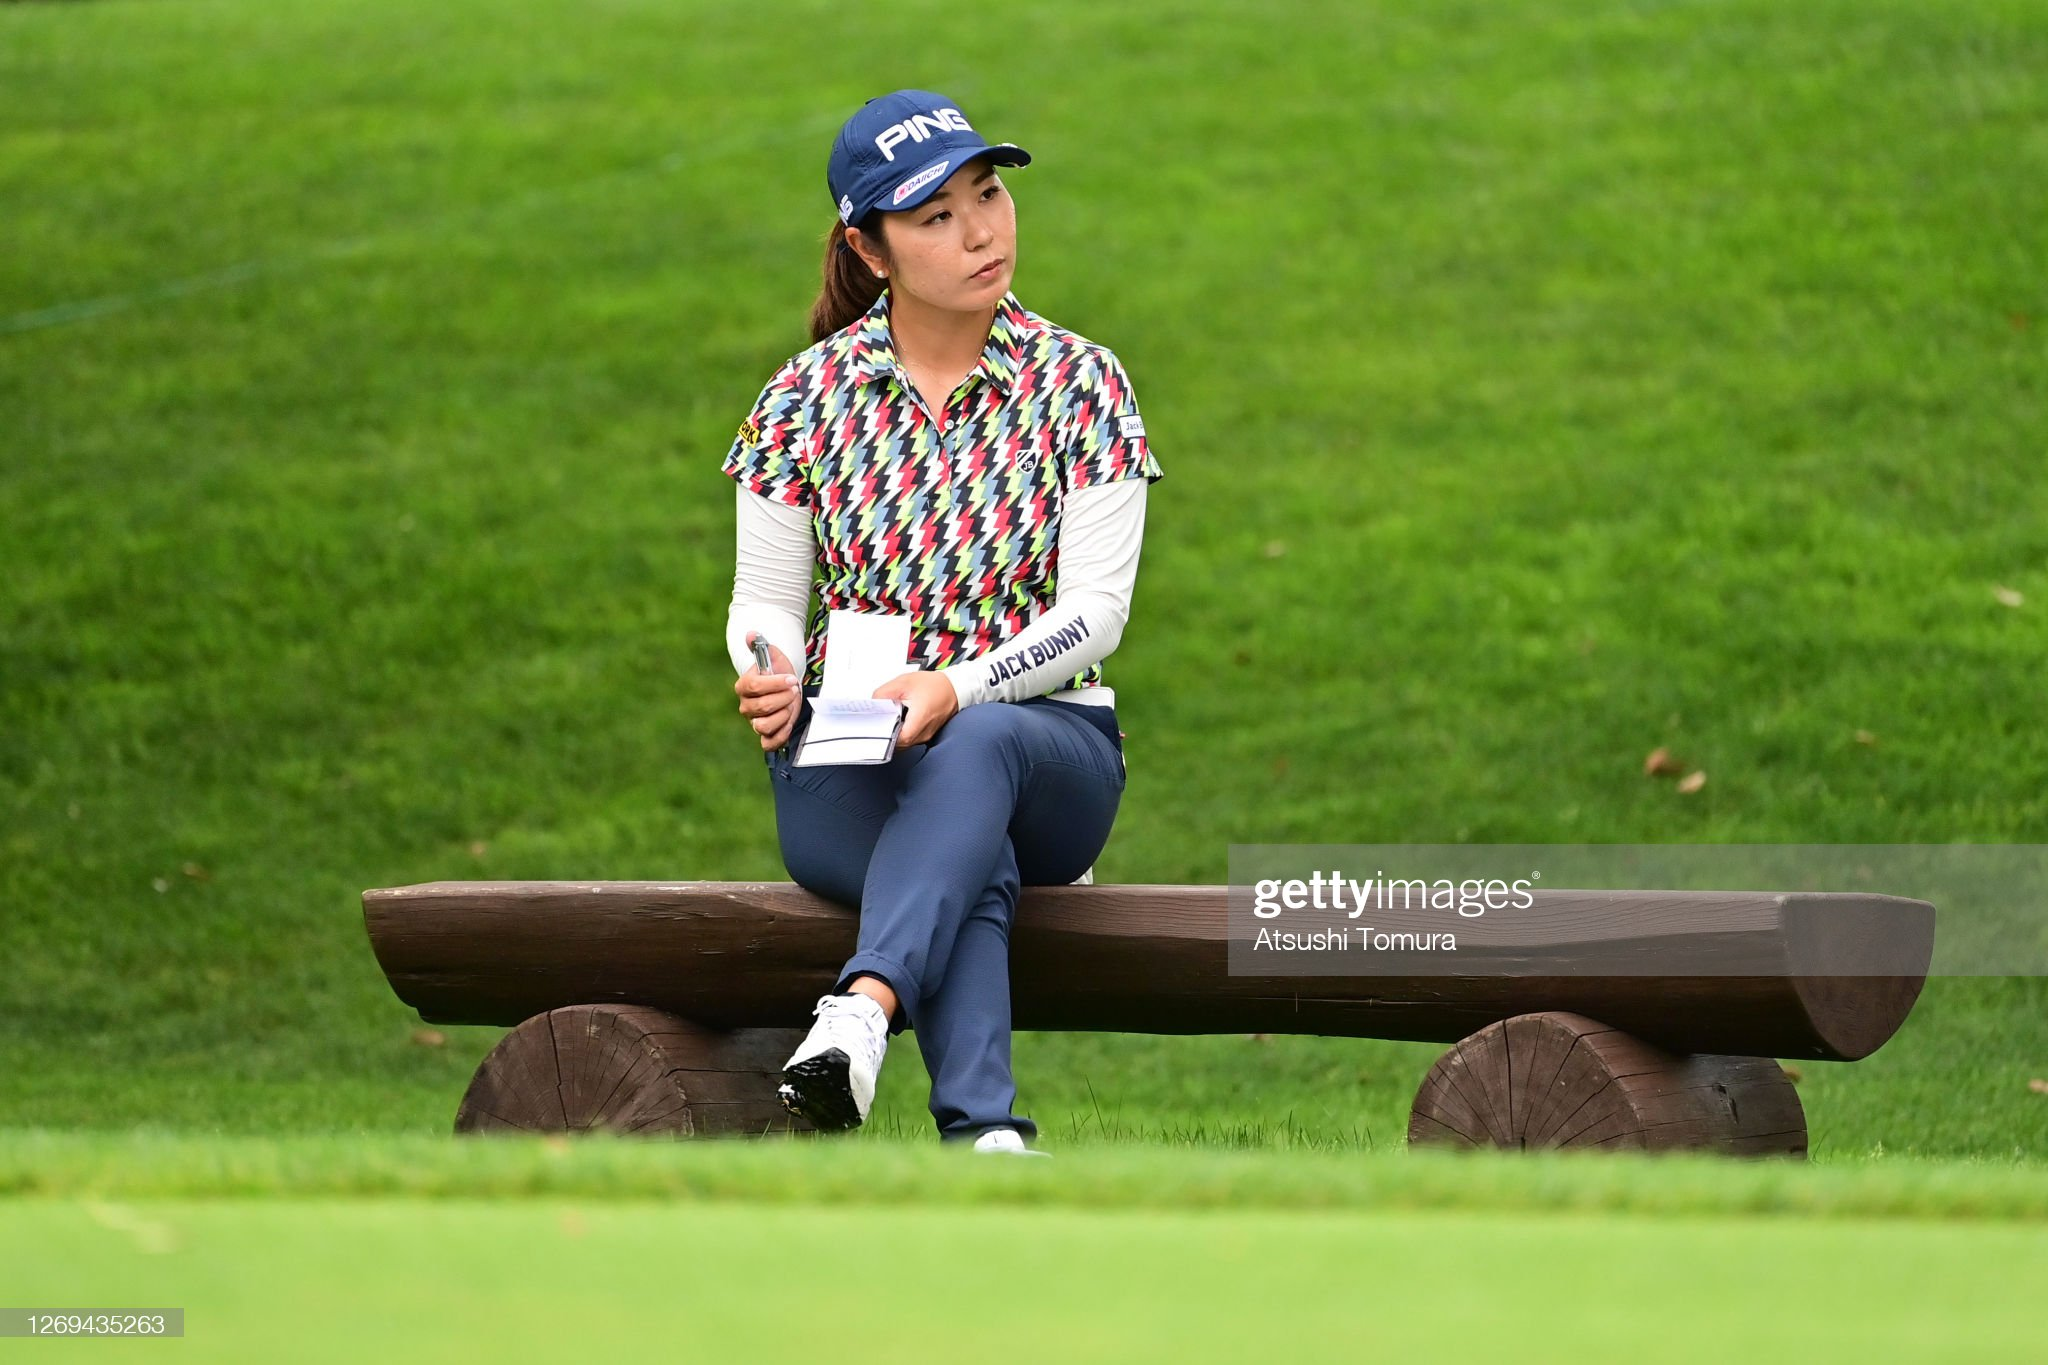 https://media.gettyimages.com/photos/mamiko-higa-of-japan-is-seen-ont-he-4th-tee-during-the-third-round-of-picture-id1269435263?s=2048x2048